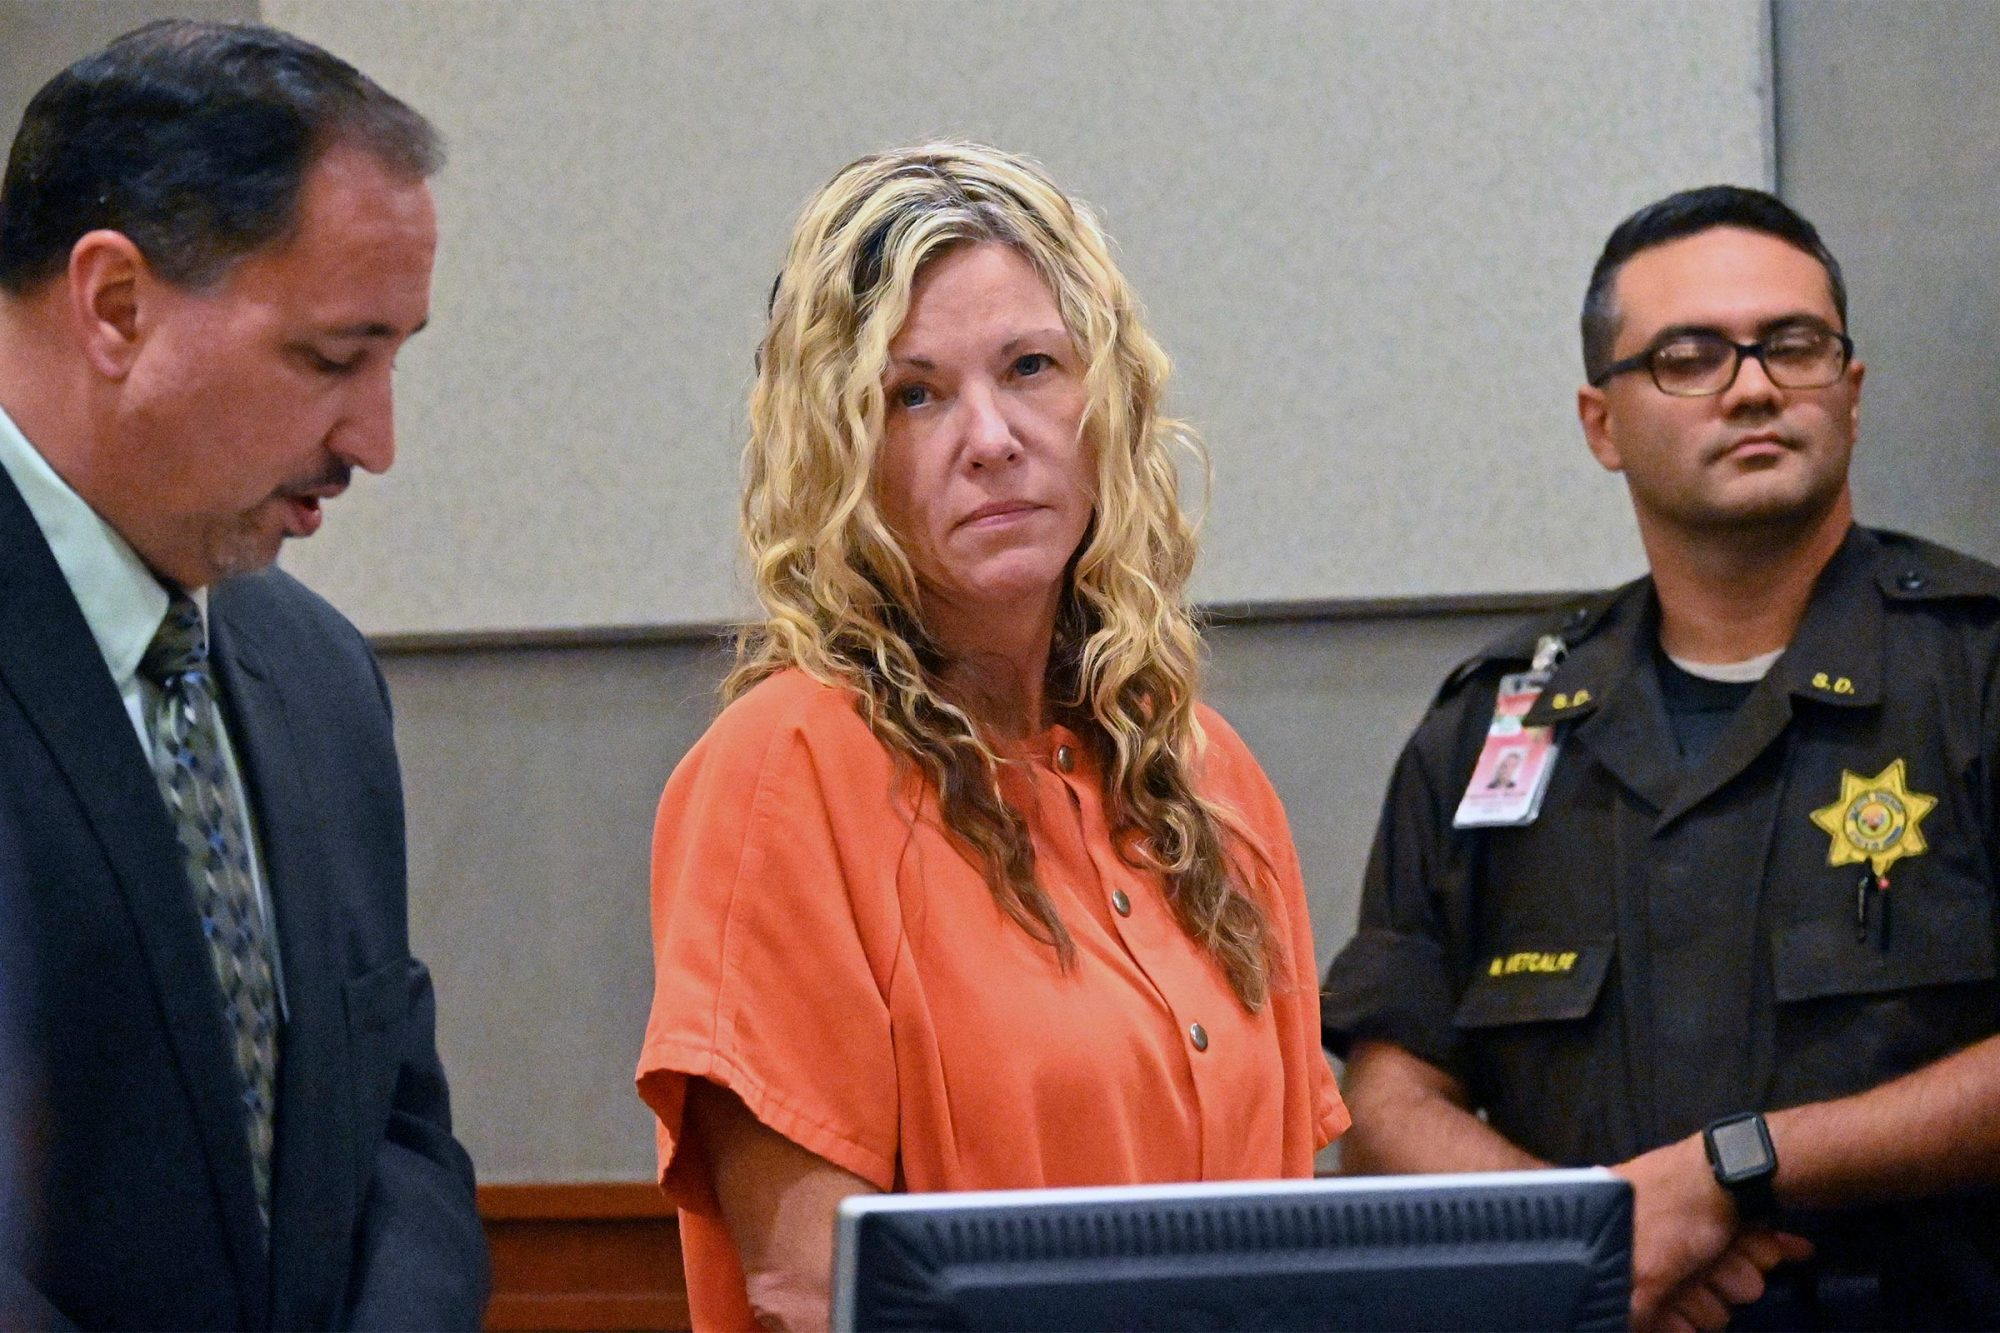 Lori Vallow to Face Murder Charges | PEOPLE.com